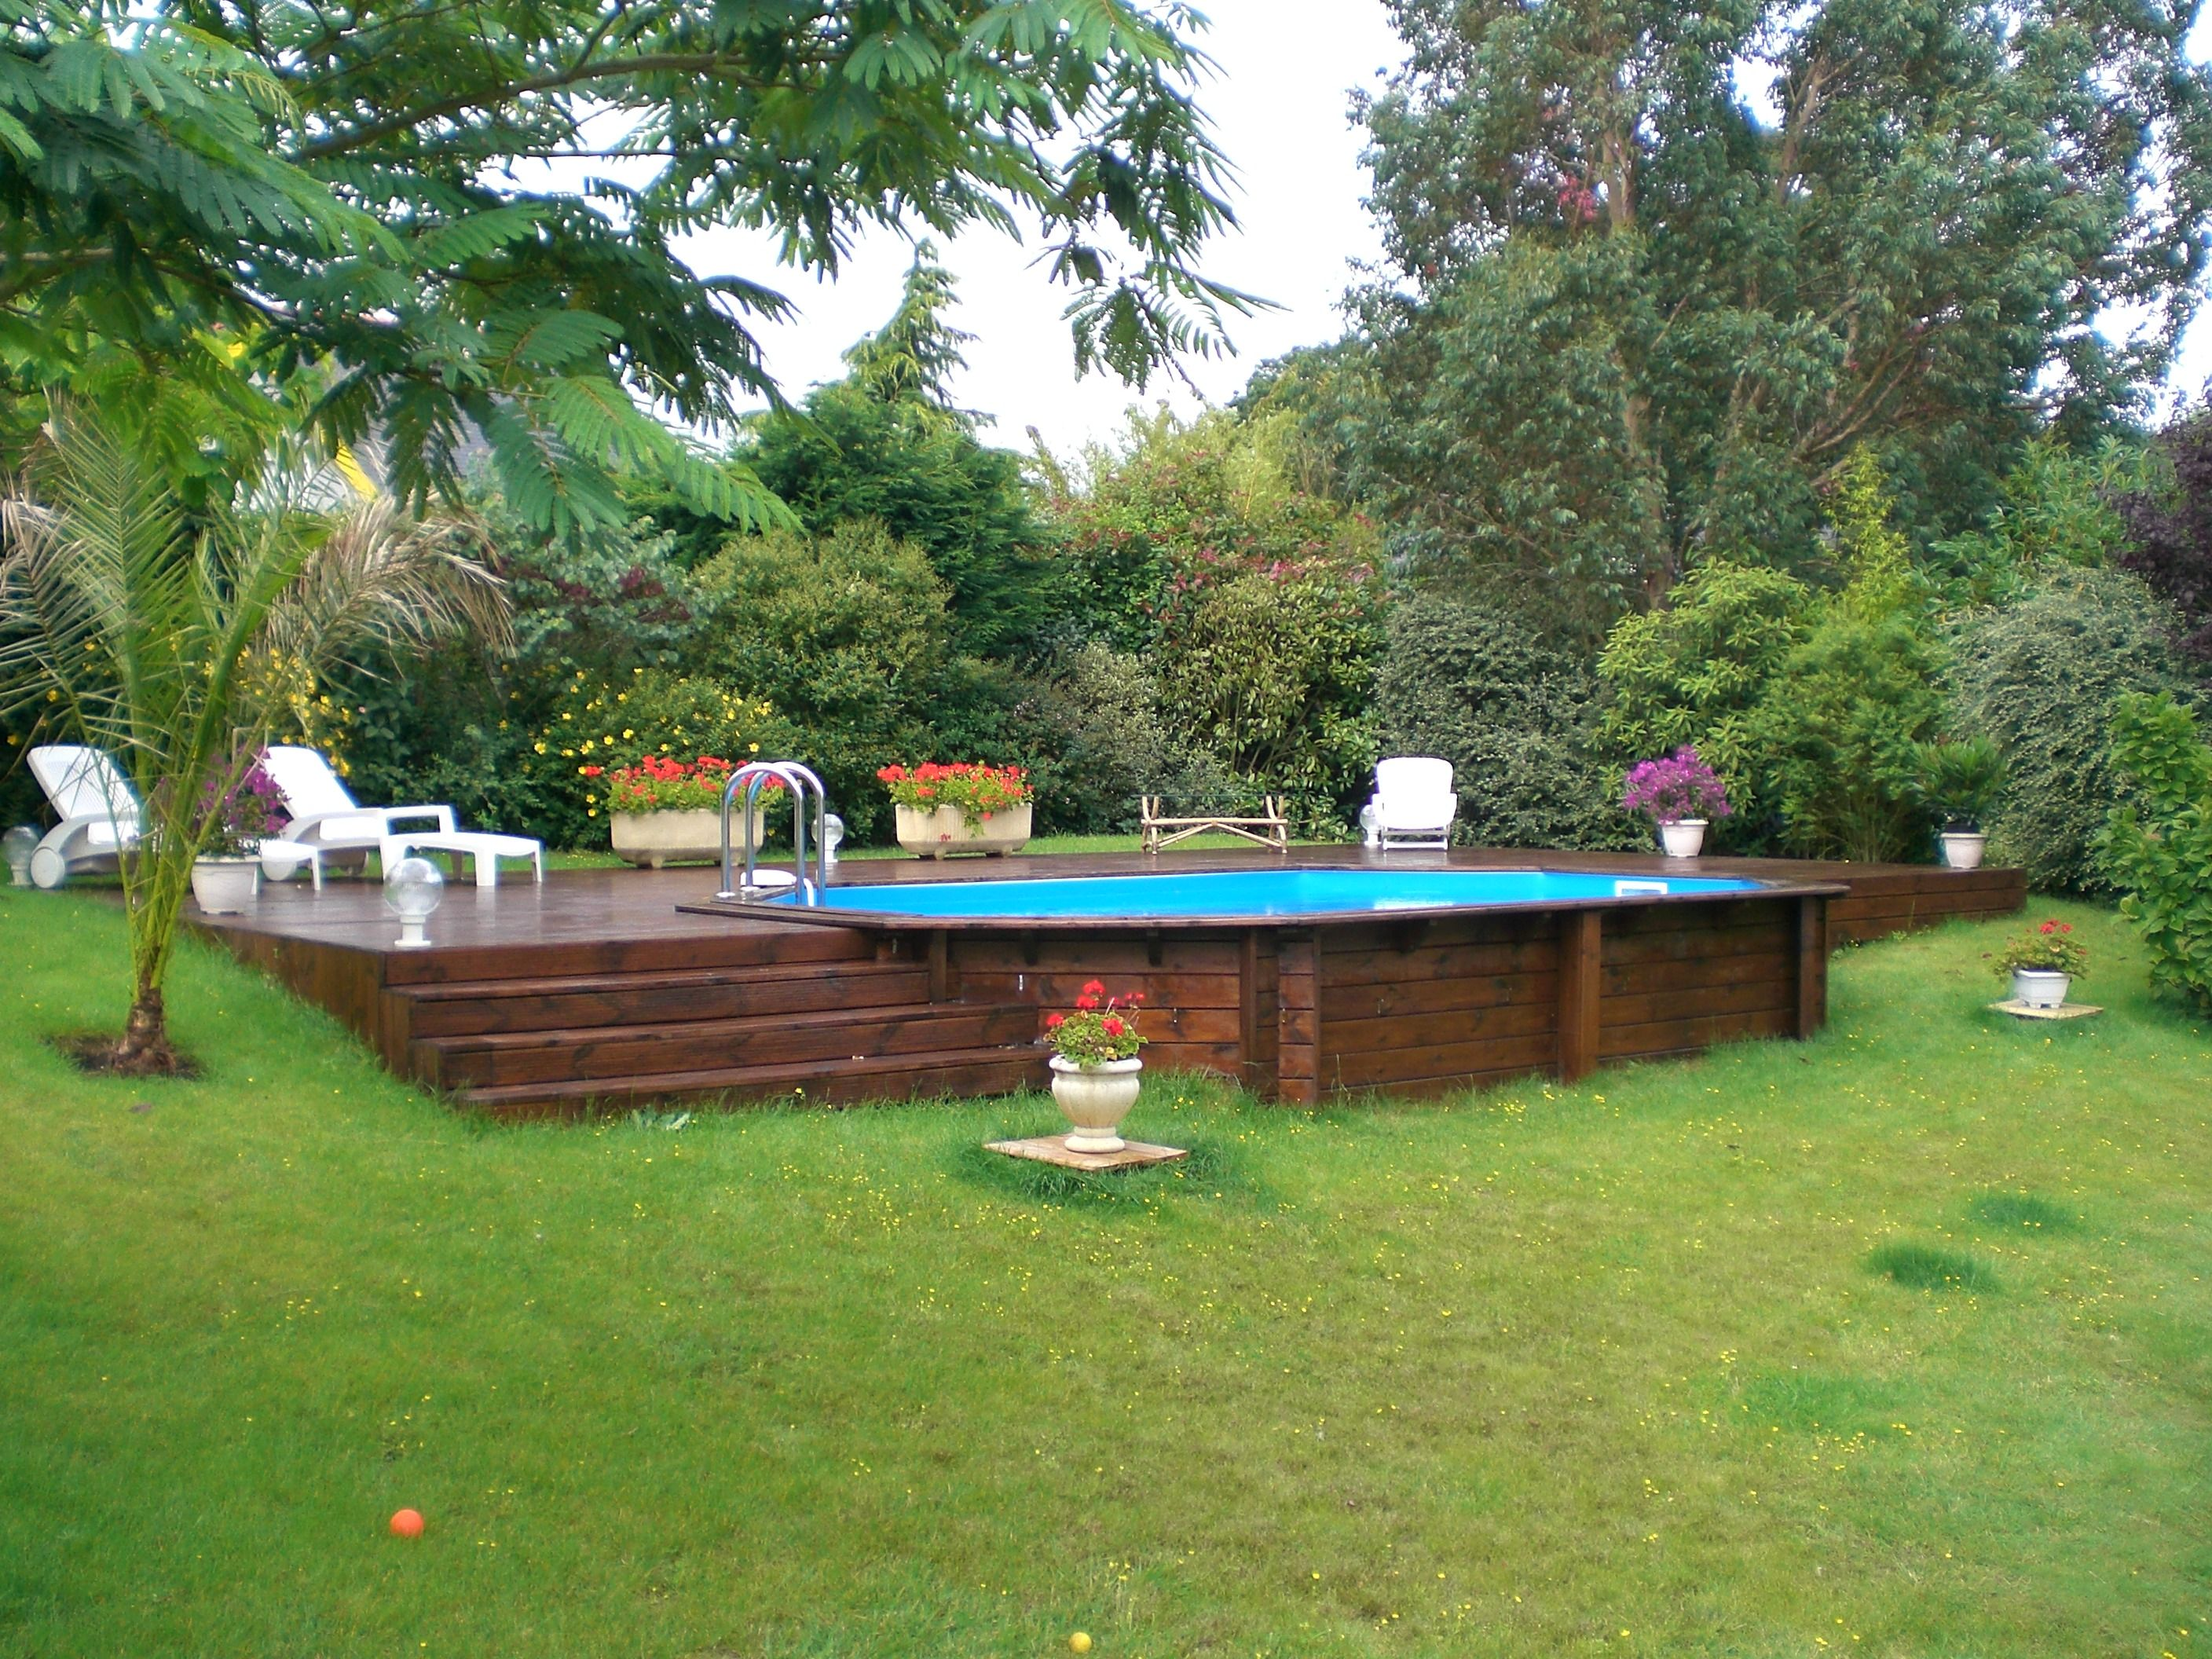 Piscine hors sol en bois semi enterr e sur terrain en for Piscine hexagonale semi enterree